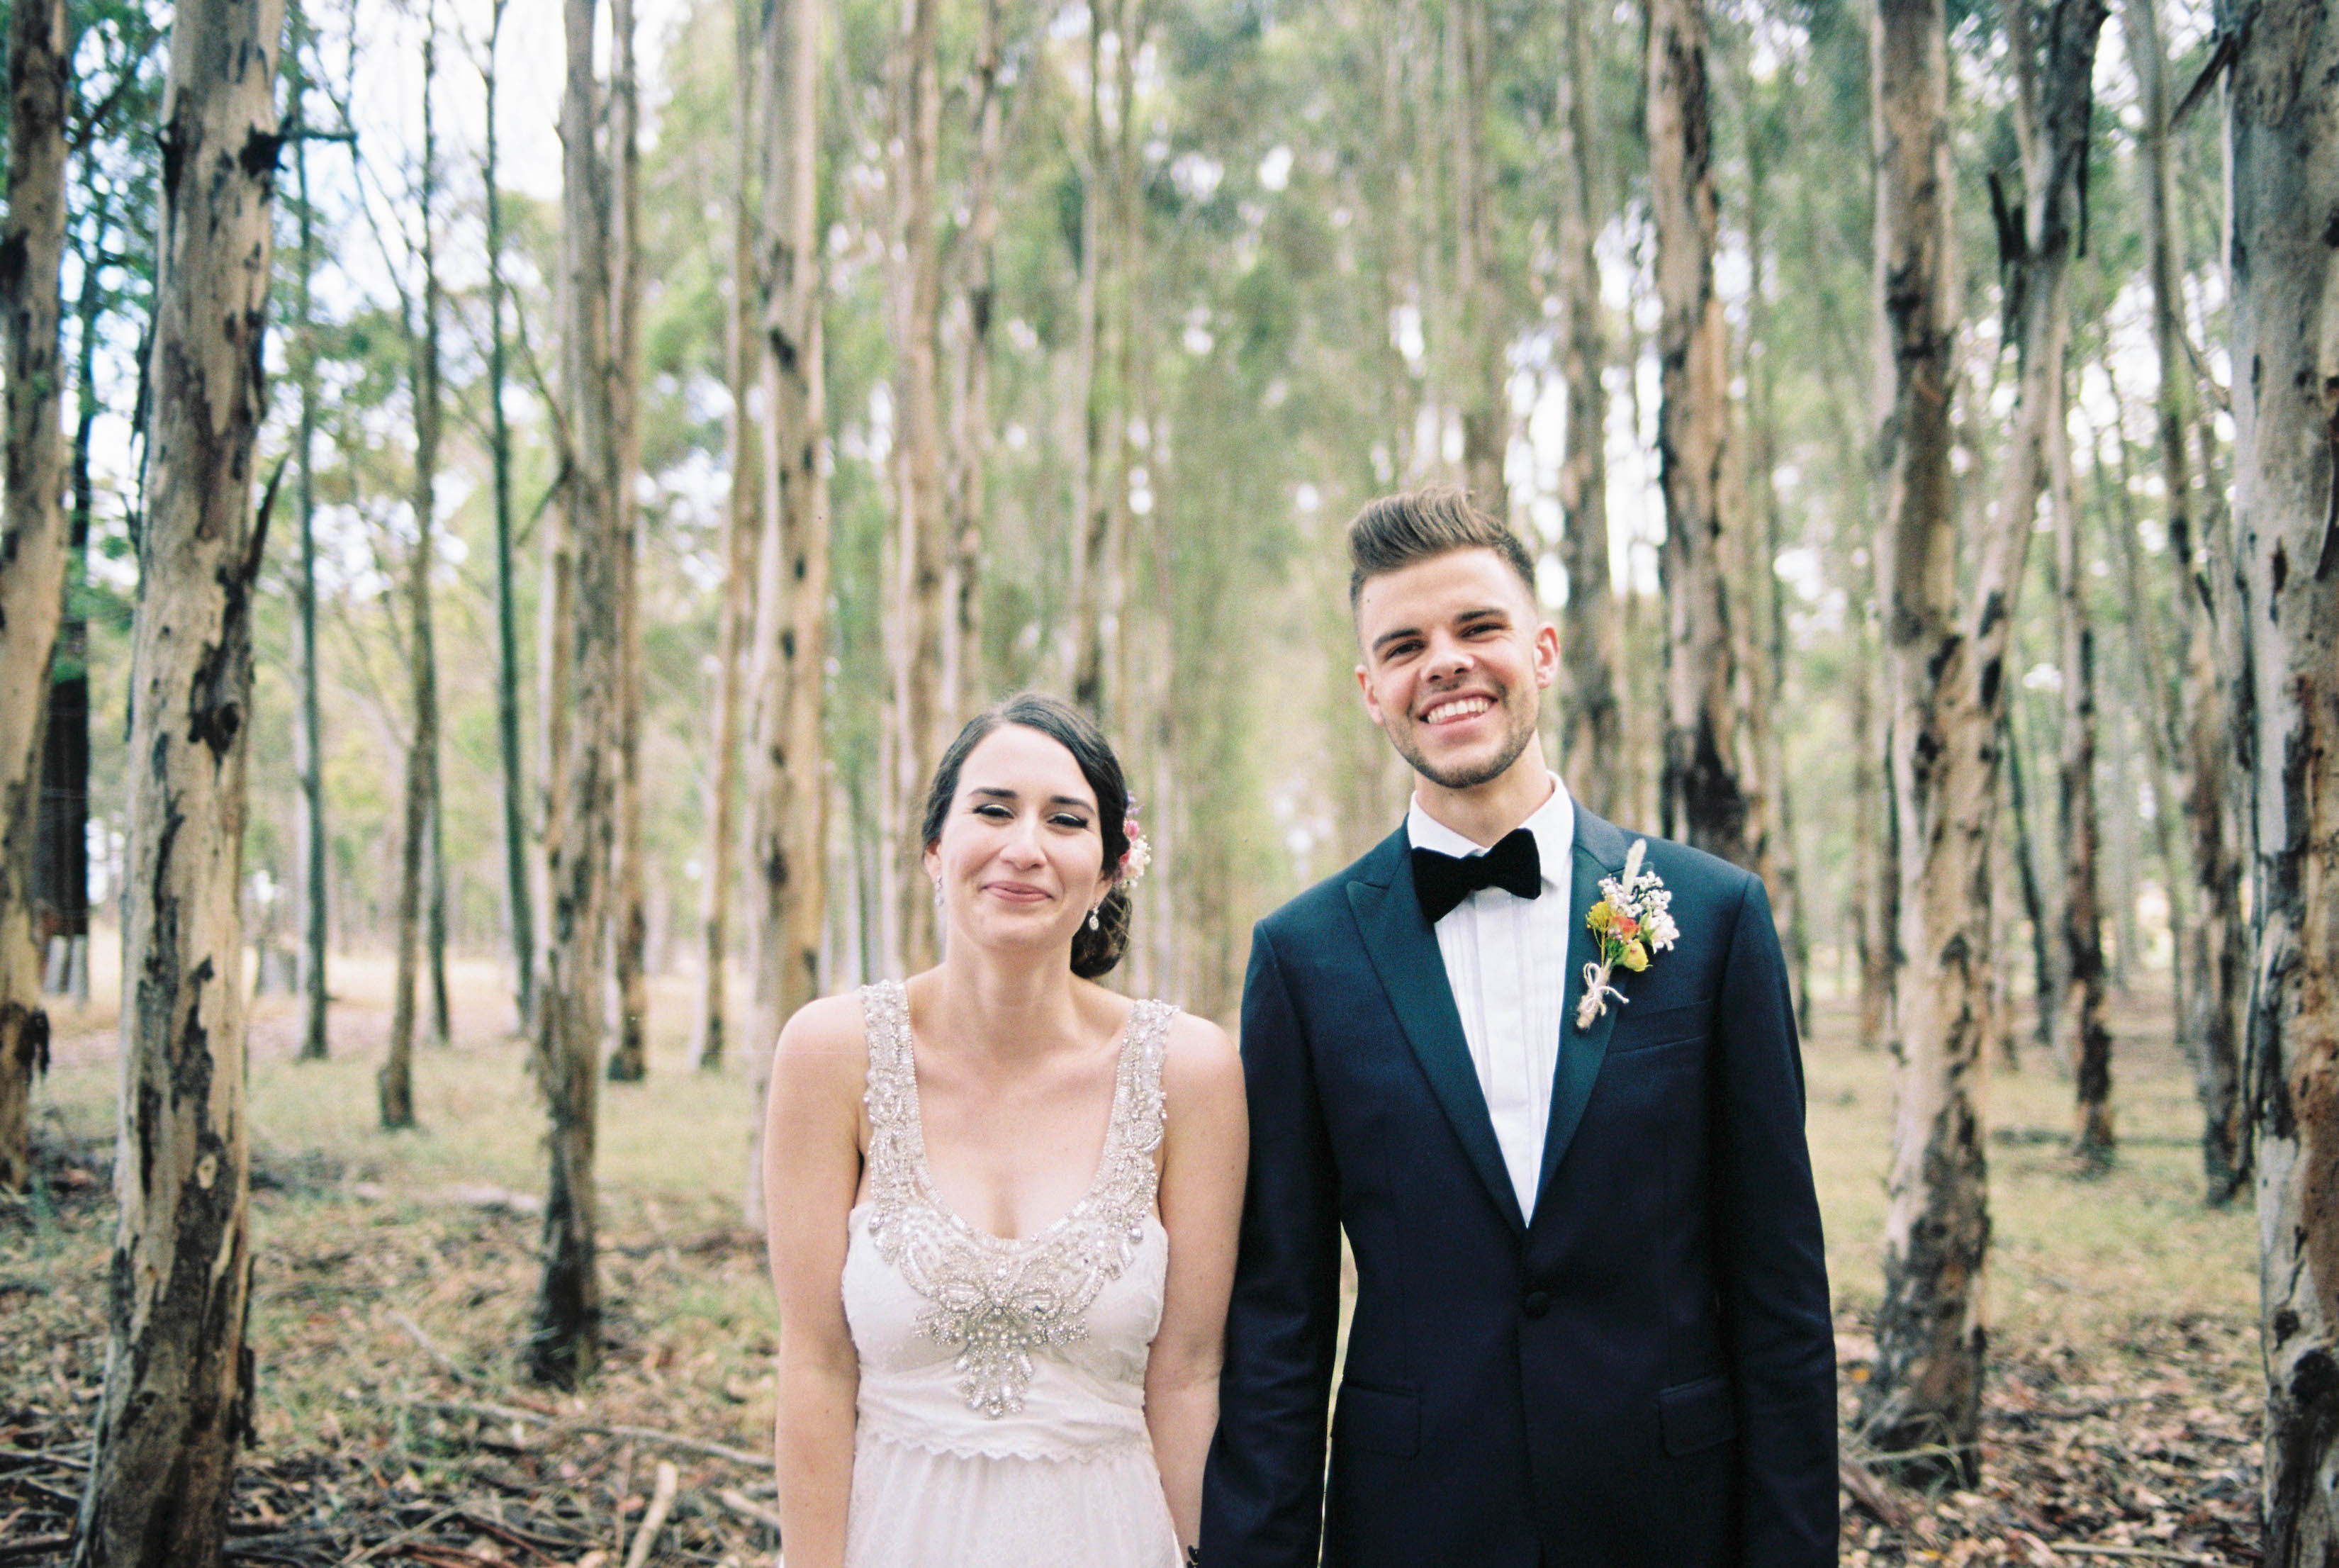 A photo of the bride & groom standing side-by-side and laughing at their Bridgetown wedding